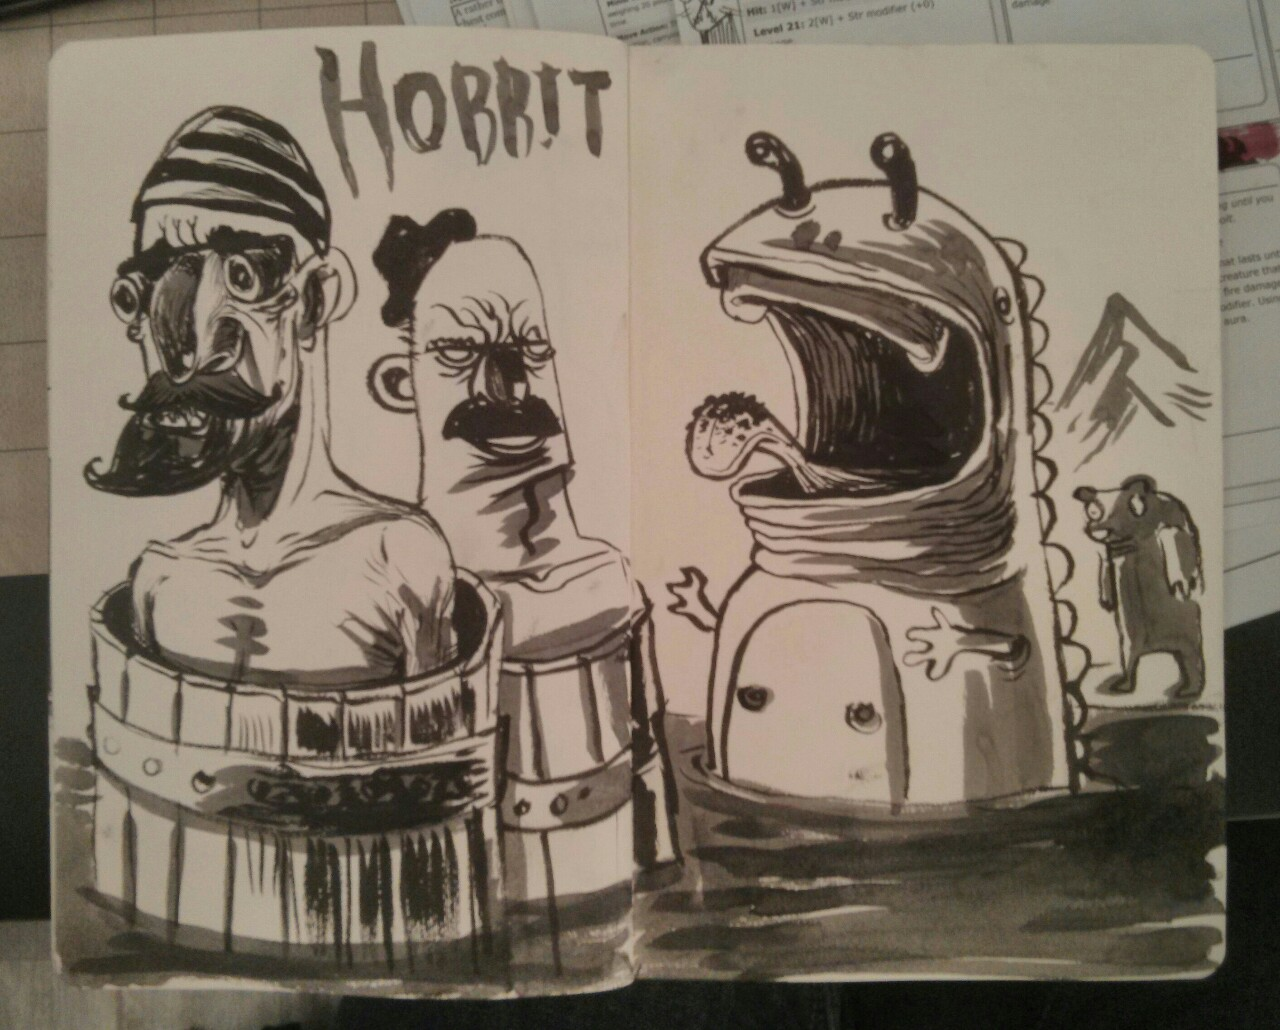 I call this a hobbit drawing. That's Oin and Gloin in their barrels as smaug (now a toothless sea monster) attacks and Bjorn, the werebear watches the action.